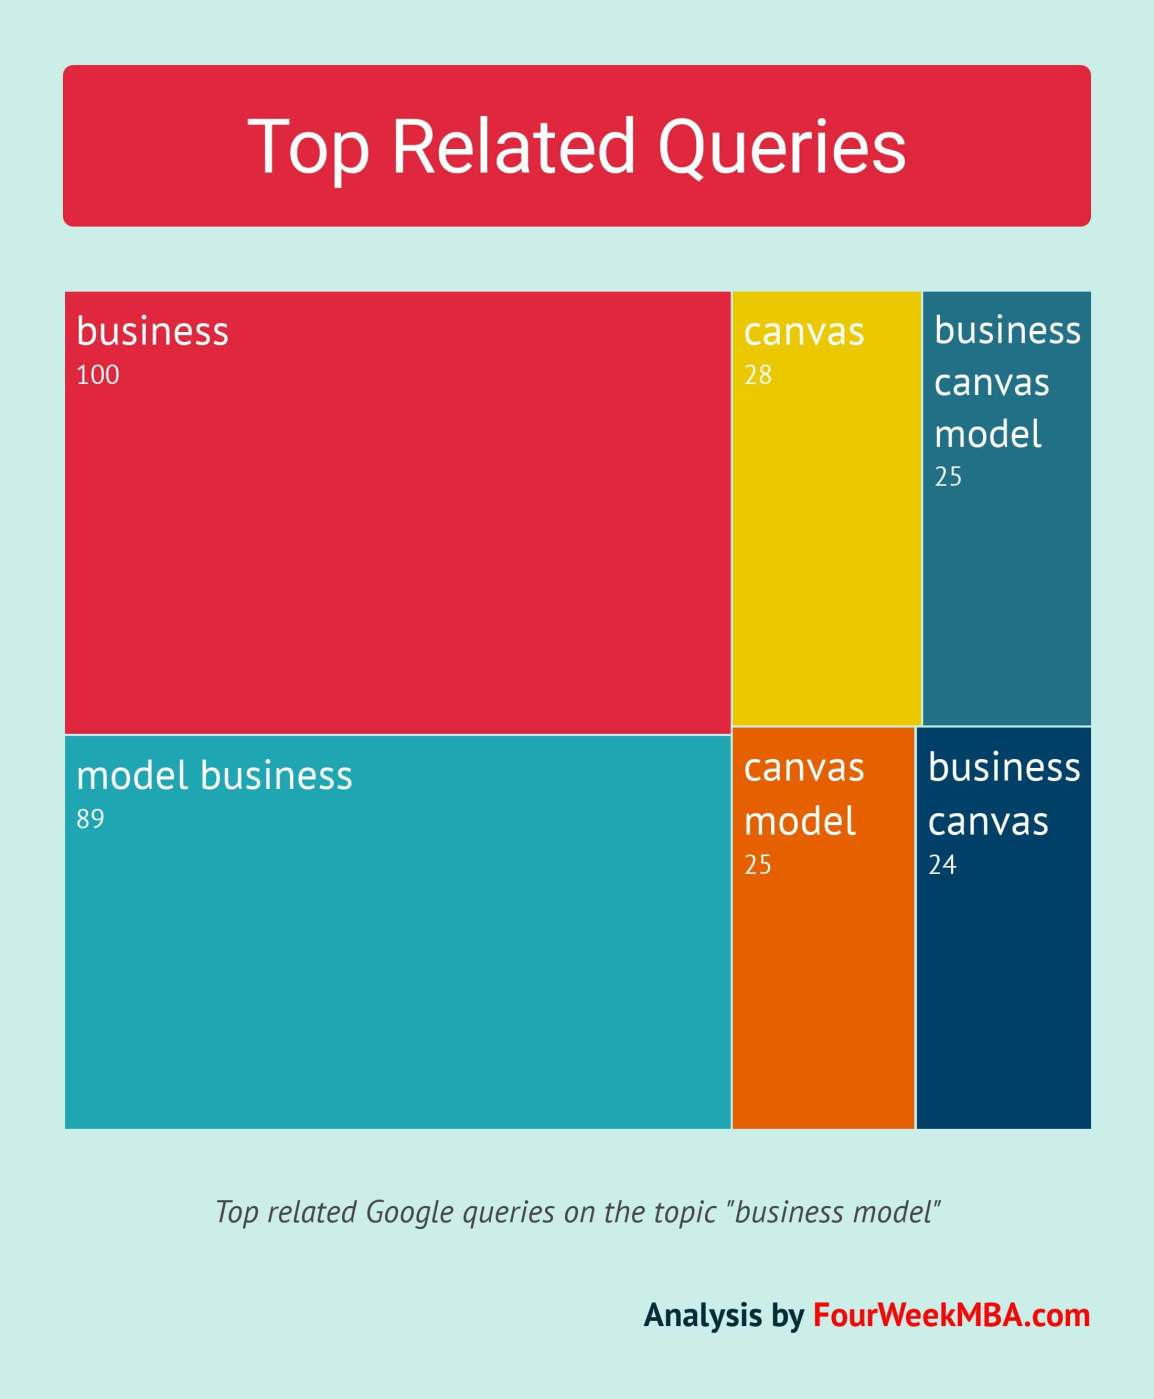 top-related-queries-business-models